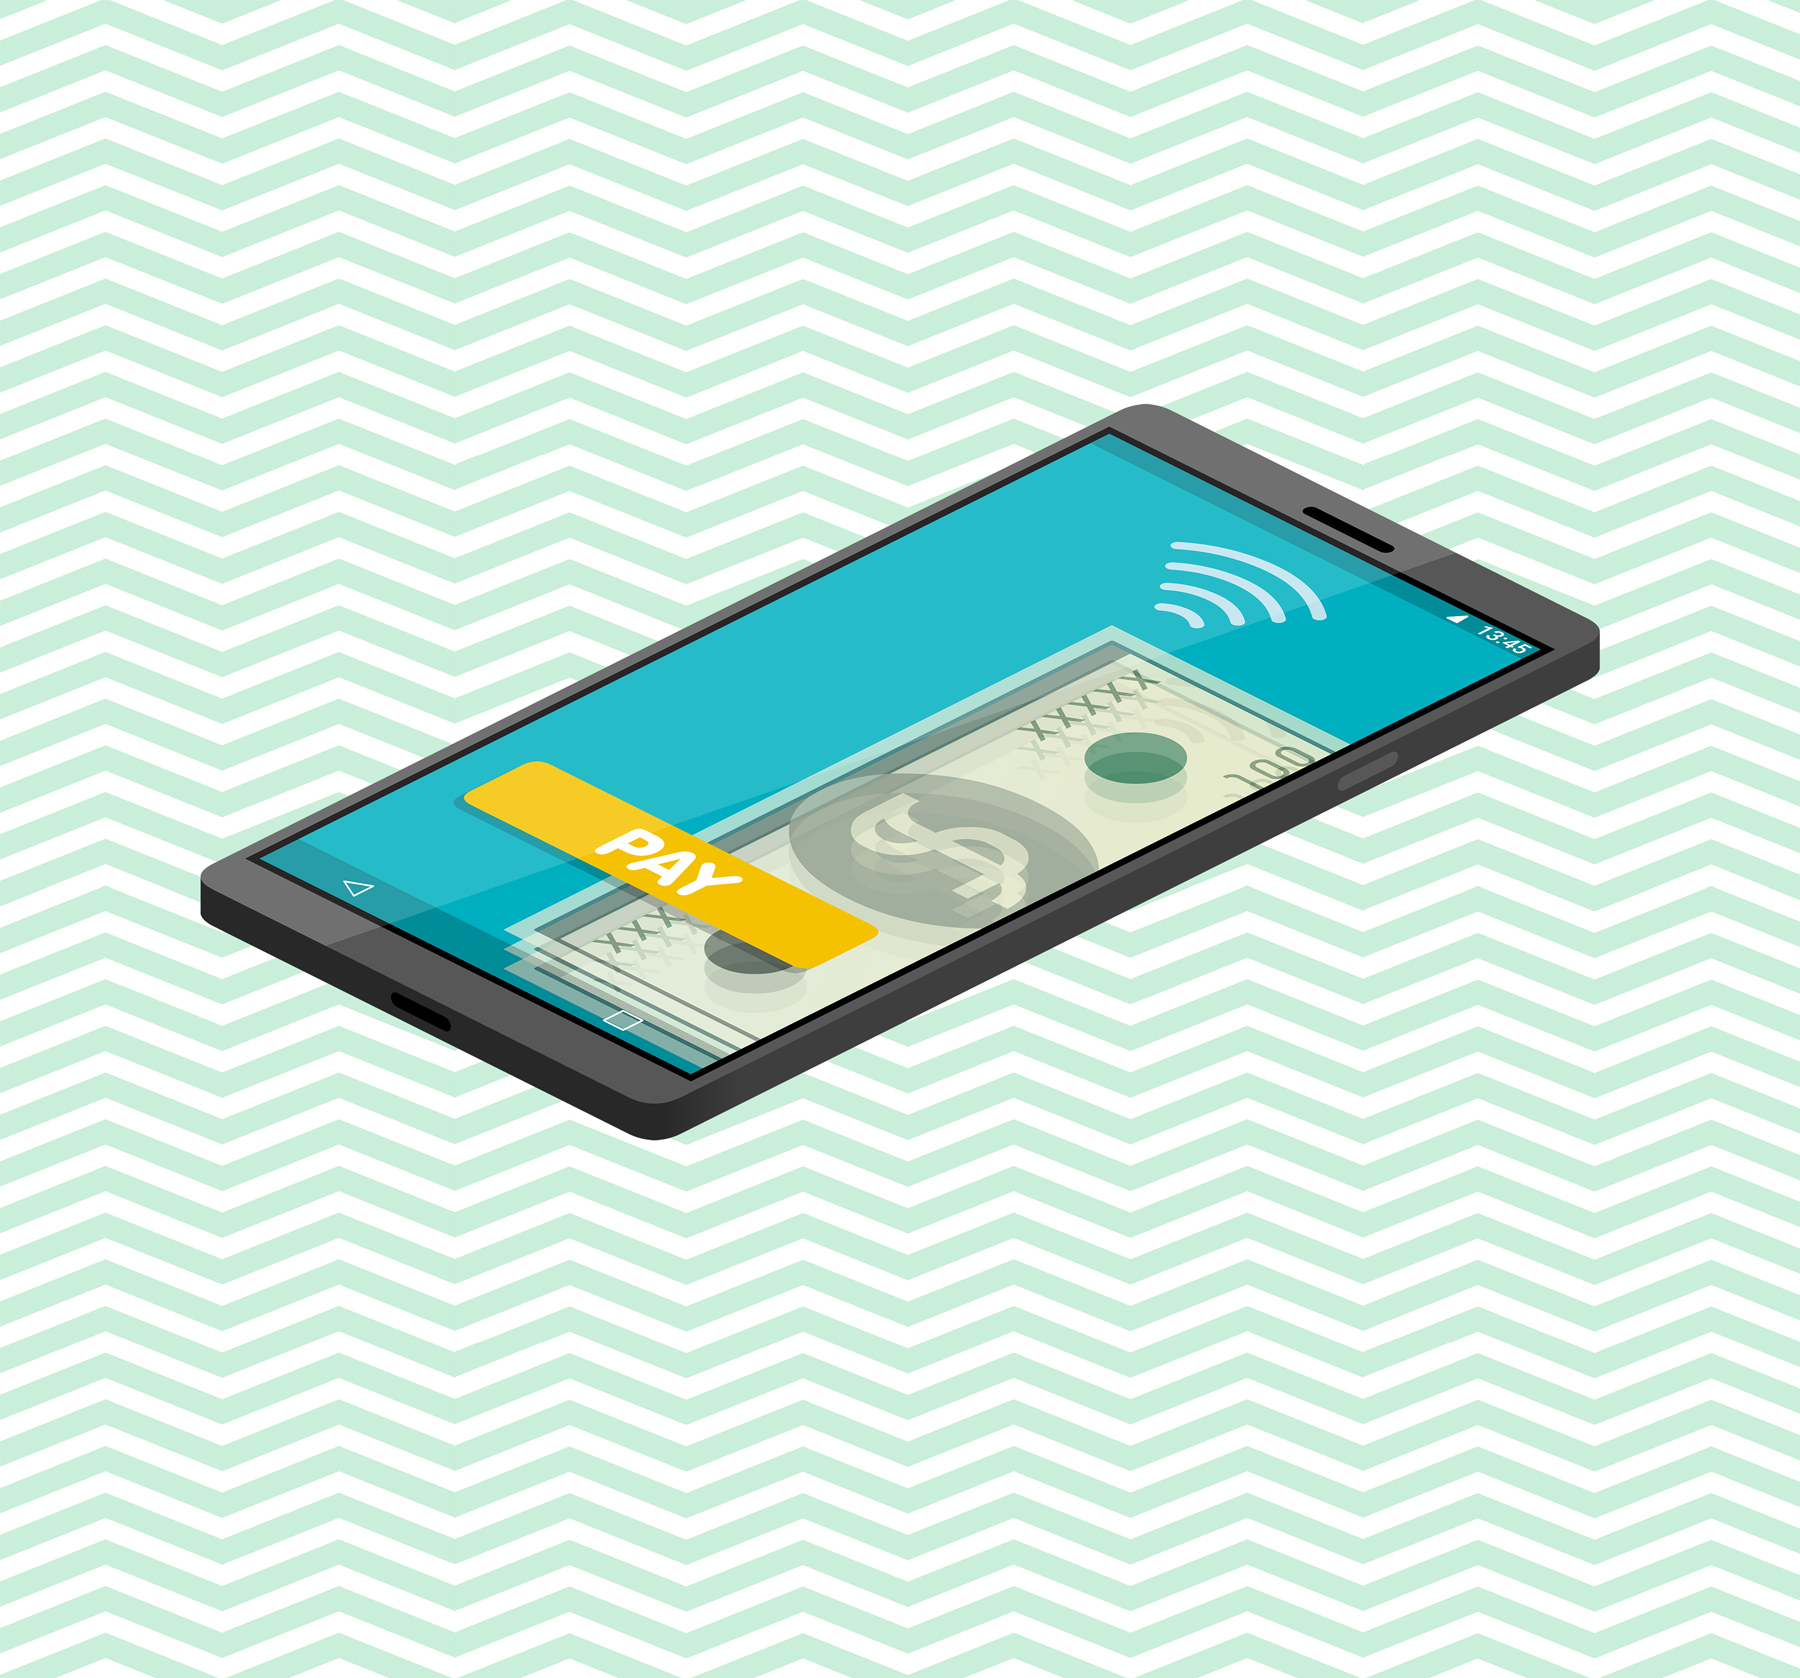 In-app purchases - phone with app on screen